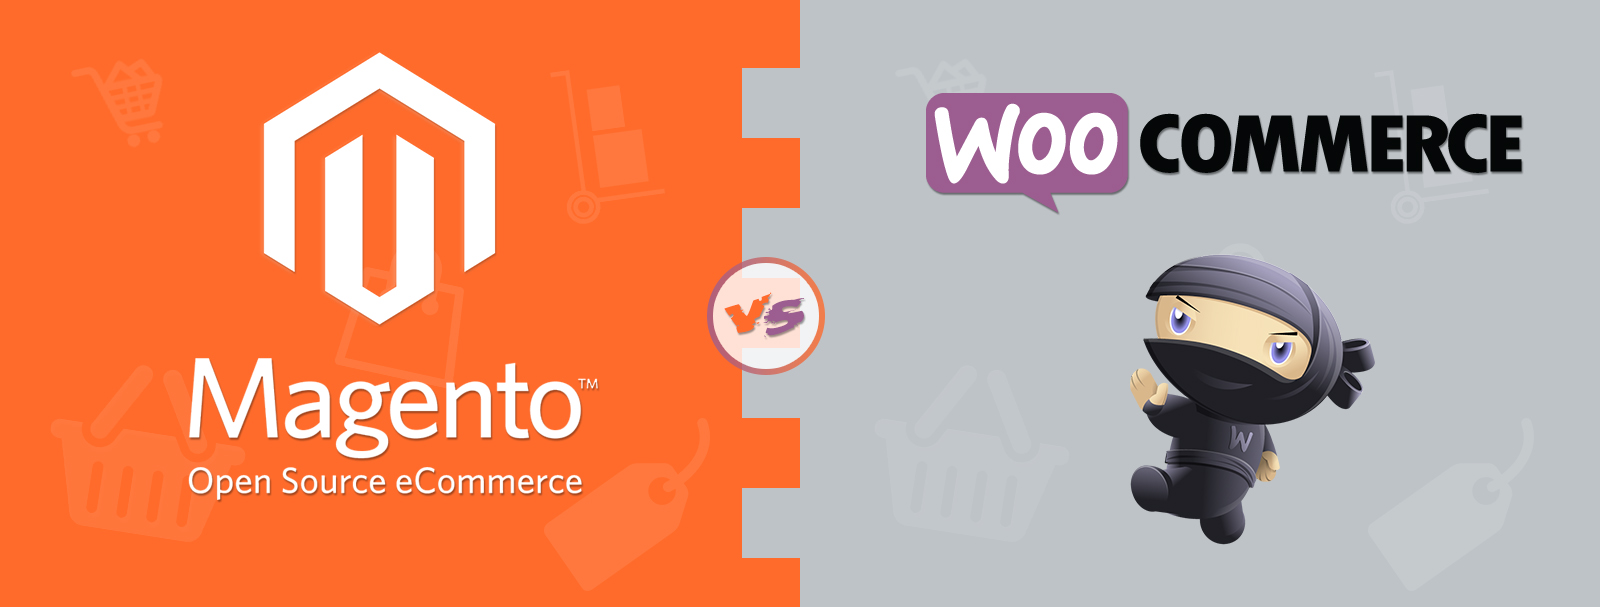 Woo Commerce sau Magento?